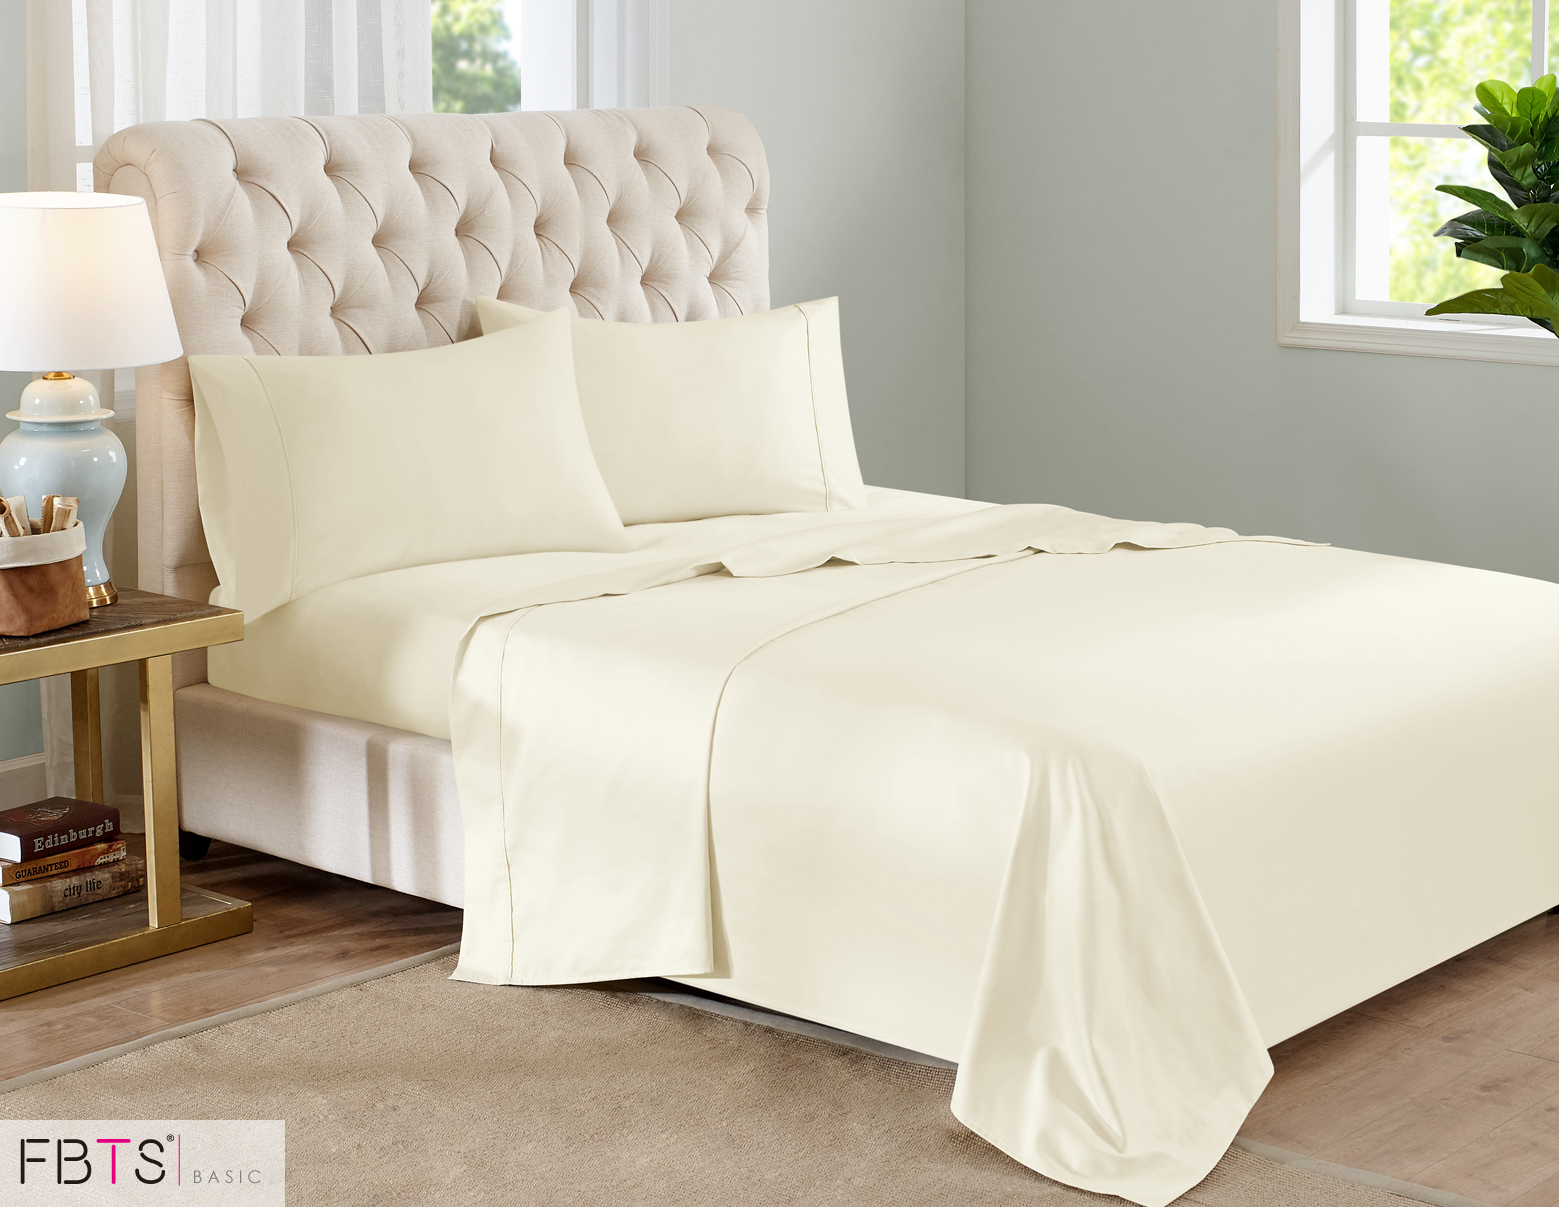 800 thread count sheets. Sheet Sets (King, Beige) 800 Thread Count Like Cotton Rich Blend Hotel Quality Luxury Bedding With 18\u201d Deep Pockets 4 Piece Breathable Super Soft Bed Sheets